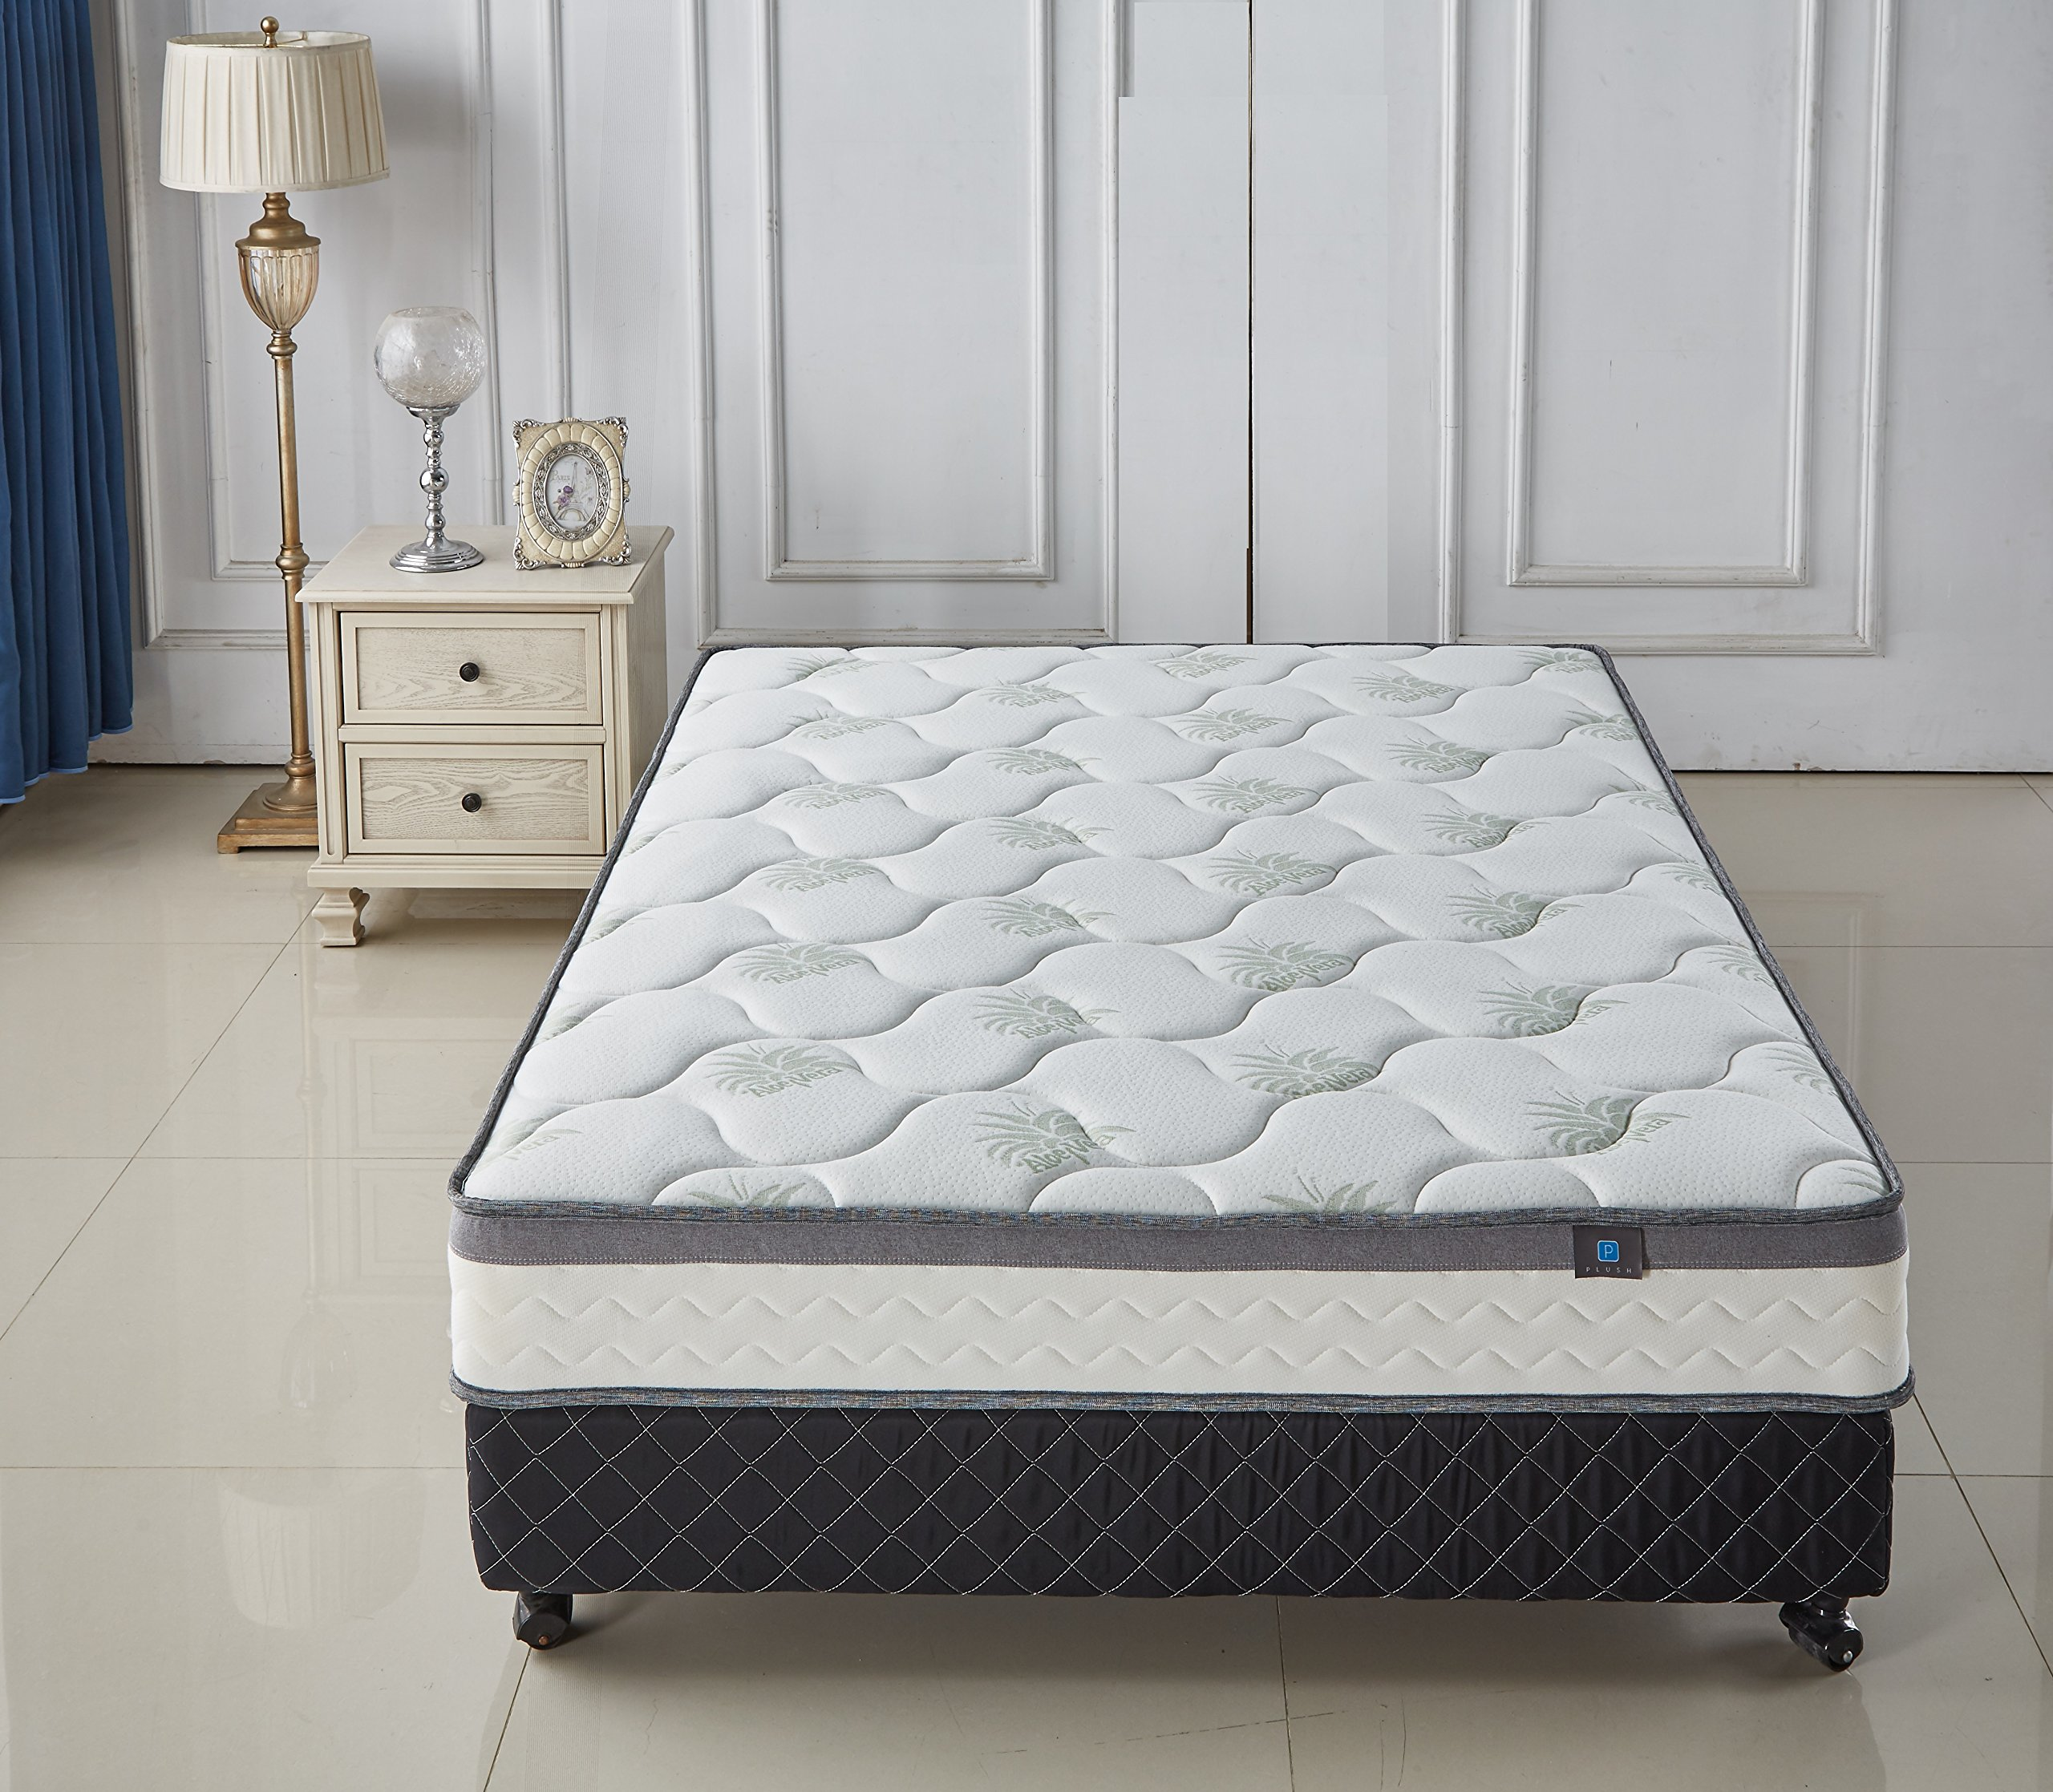 Aloe Vera 9- Inch Memory Foam & Spring Full Mattress - Cool & Gel Infused - Plush Double Layered, Full by AS Quality Signature Mattresses